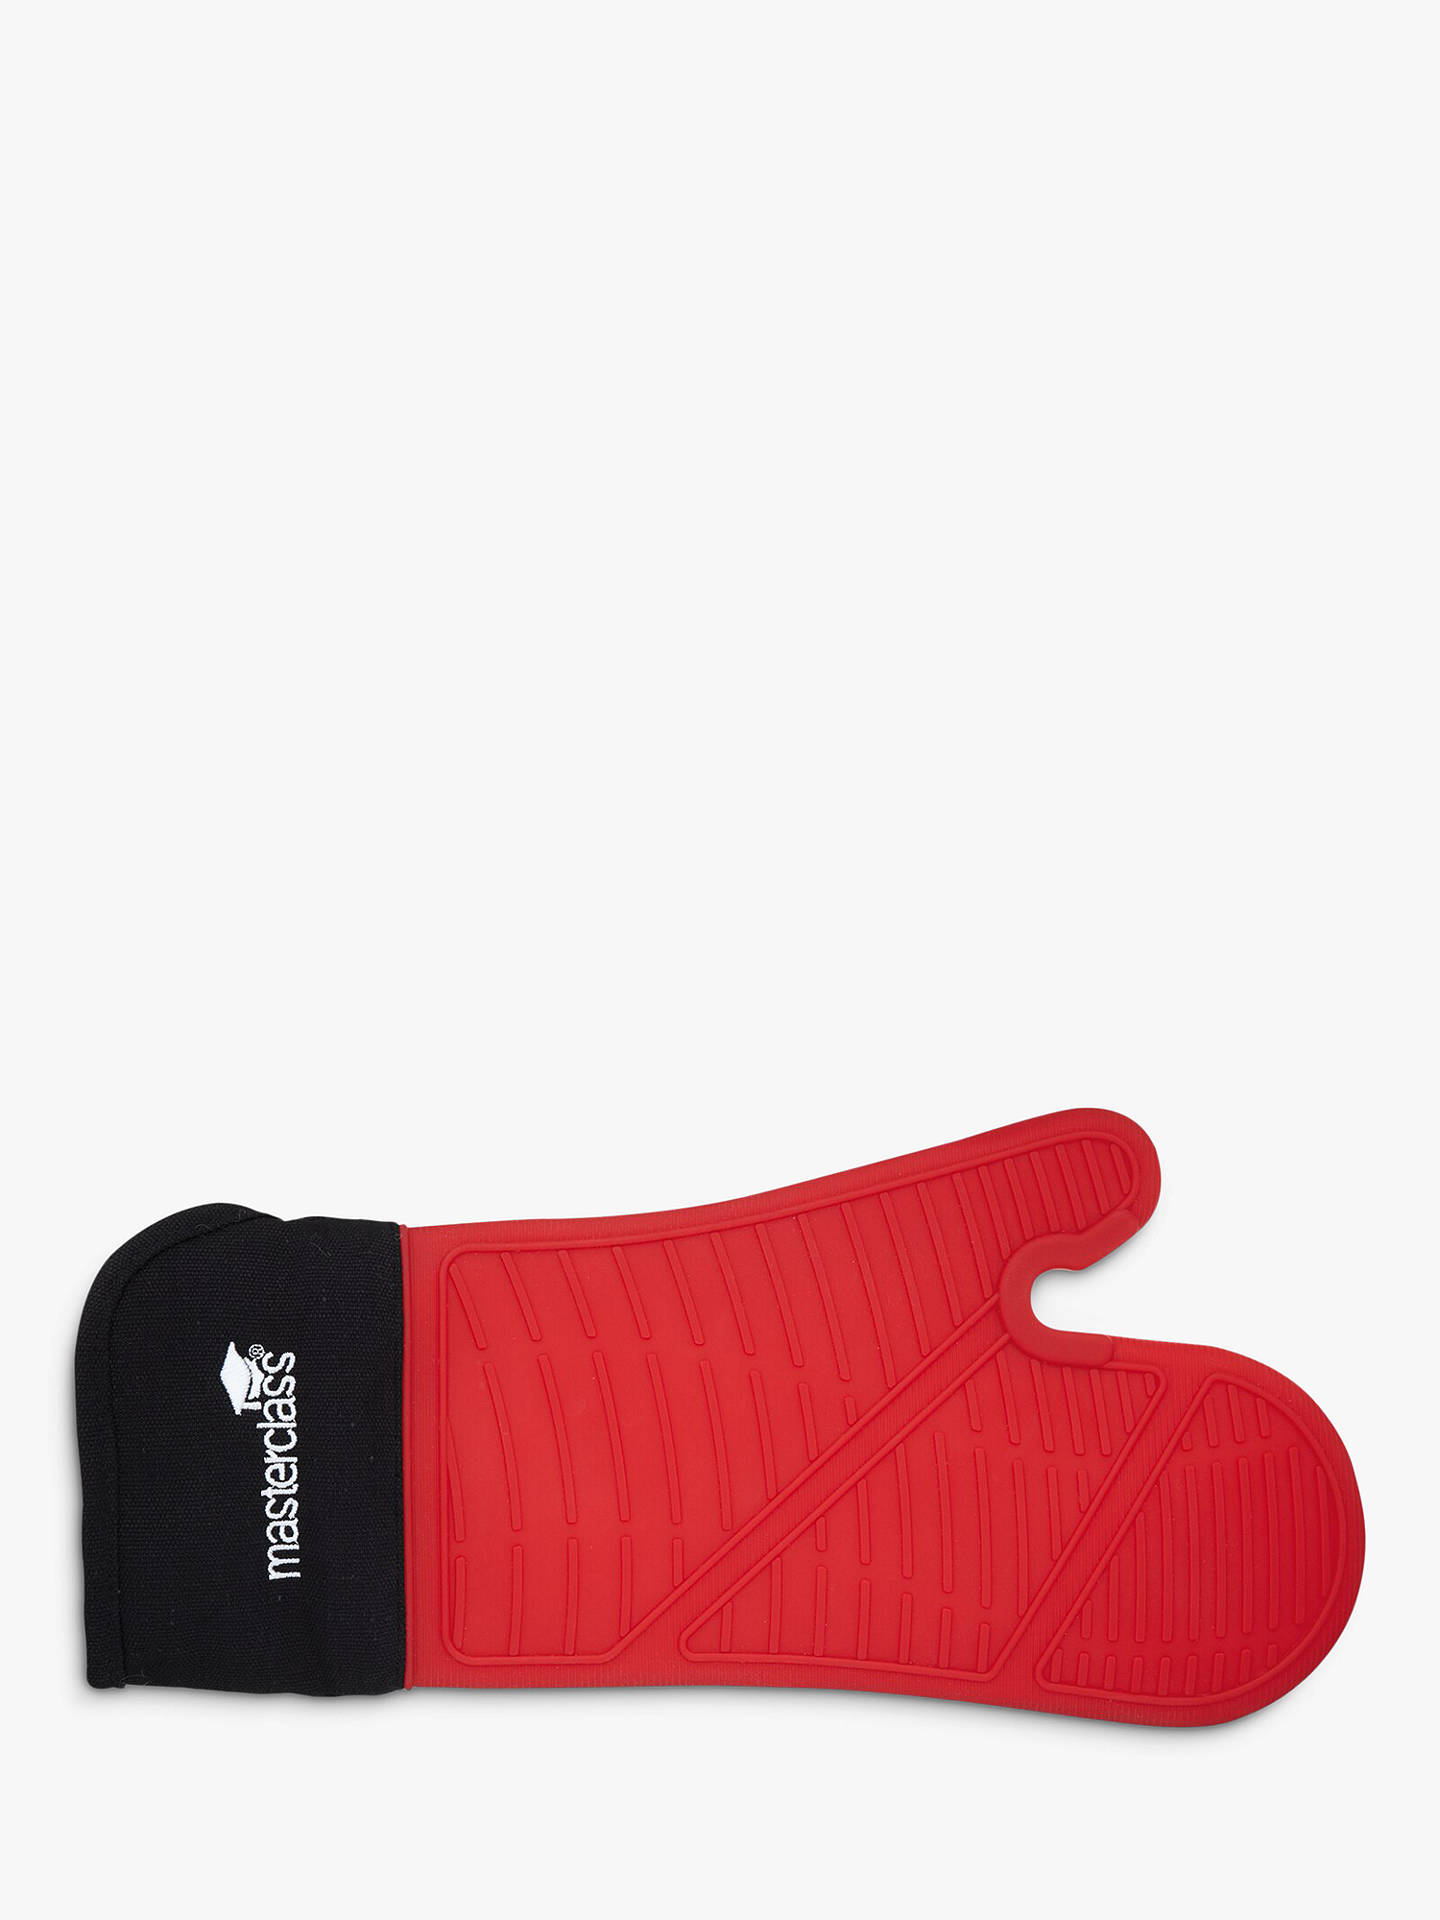 Buy Masterclass Silicone Oven Mitt, Red Online at johnlewis.com